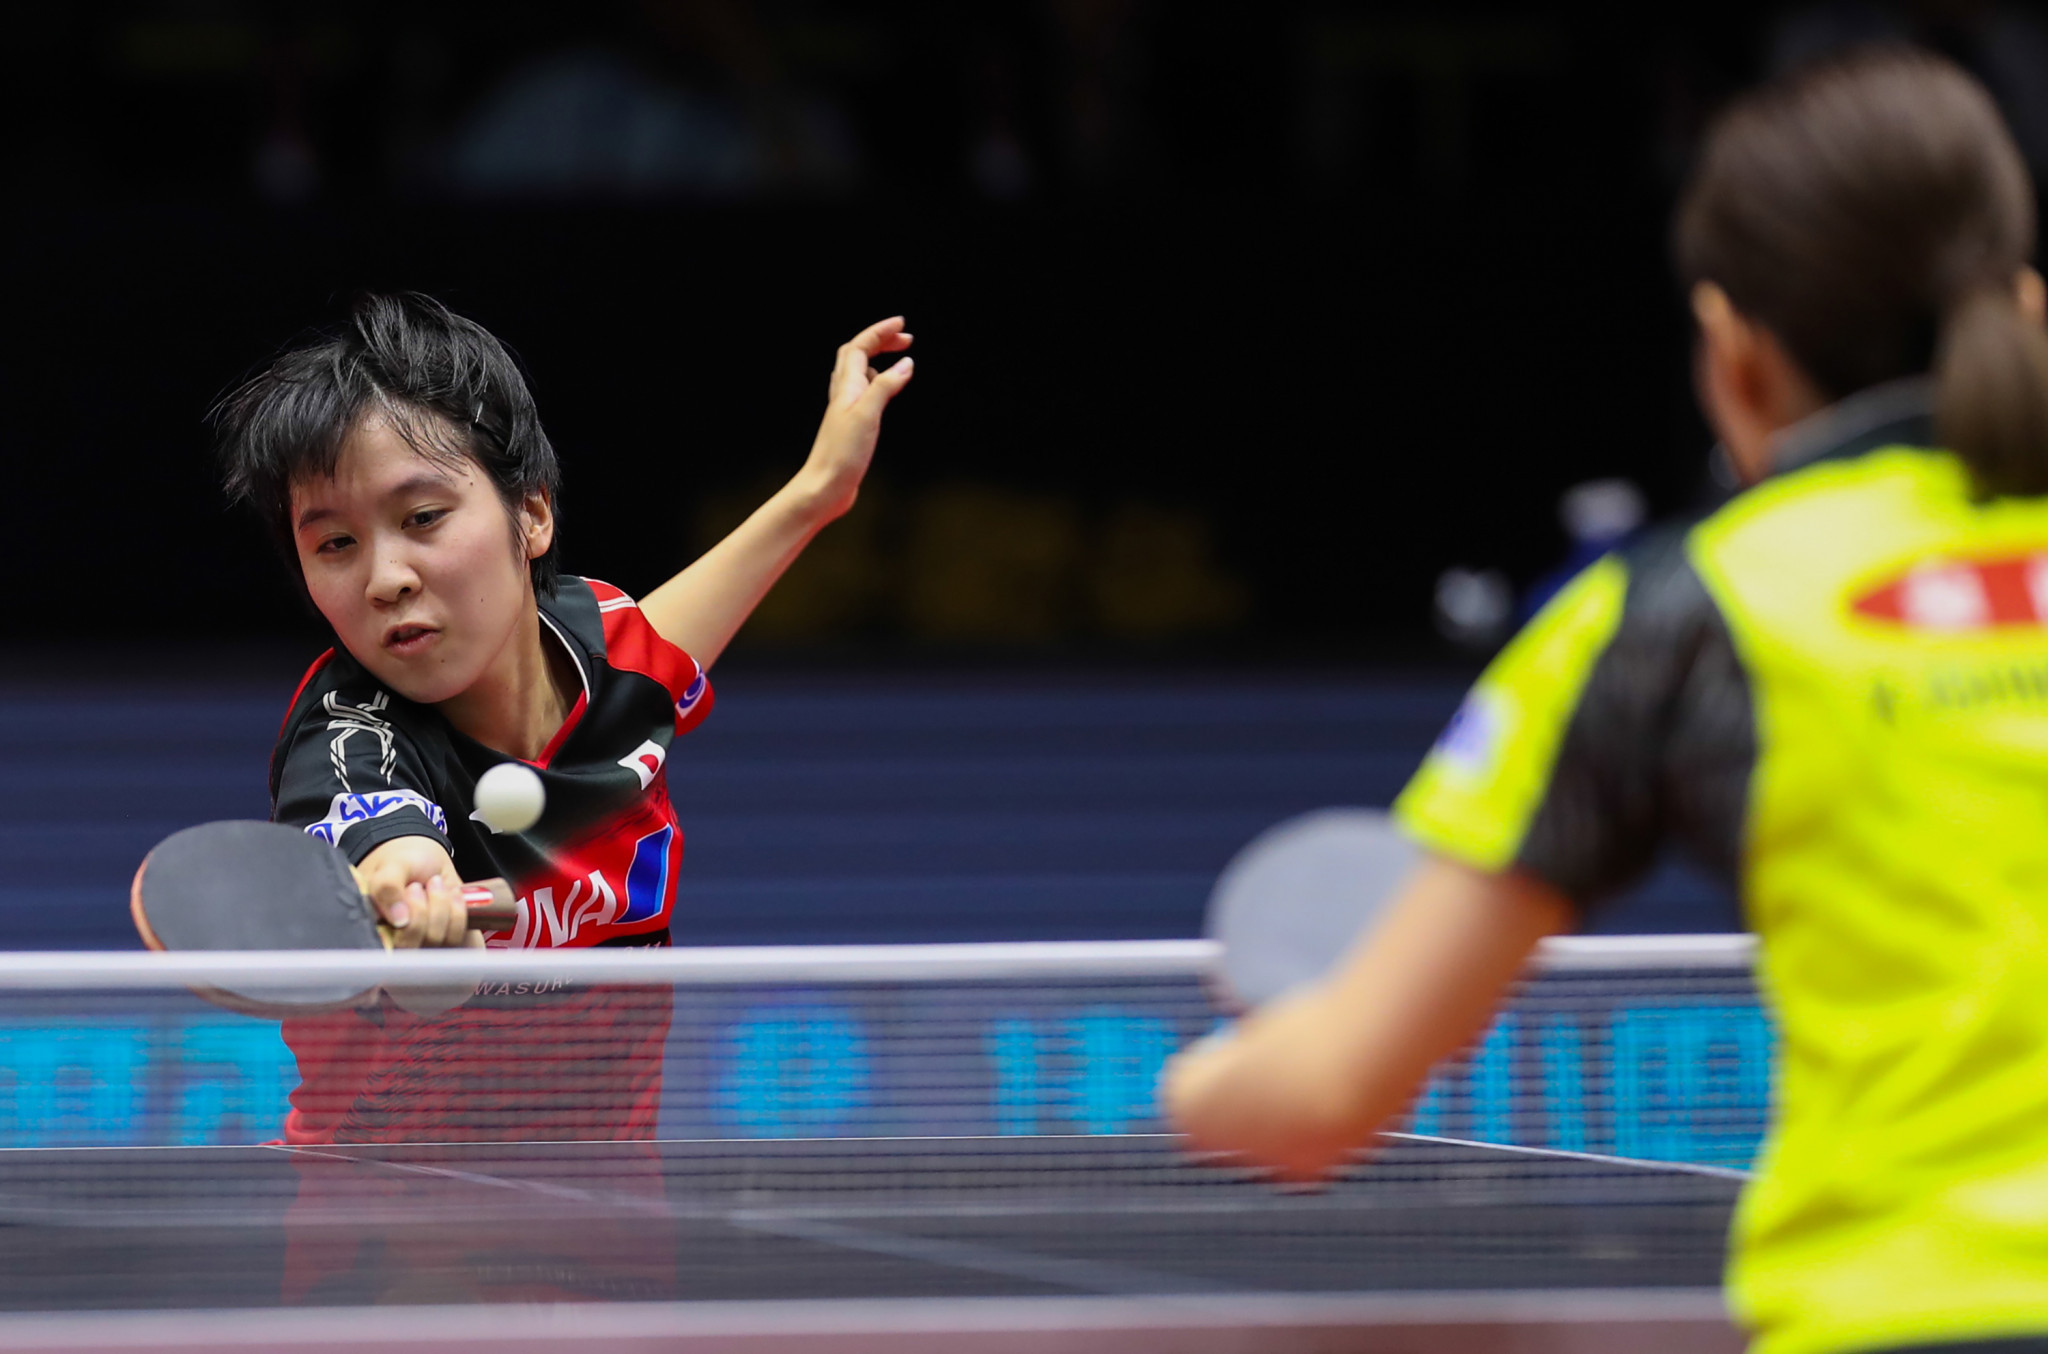 International Table Tennis Federation discuss expansion of World Championships